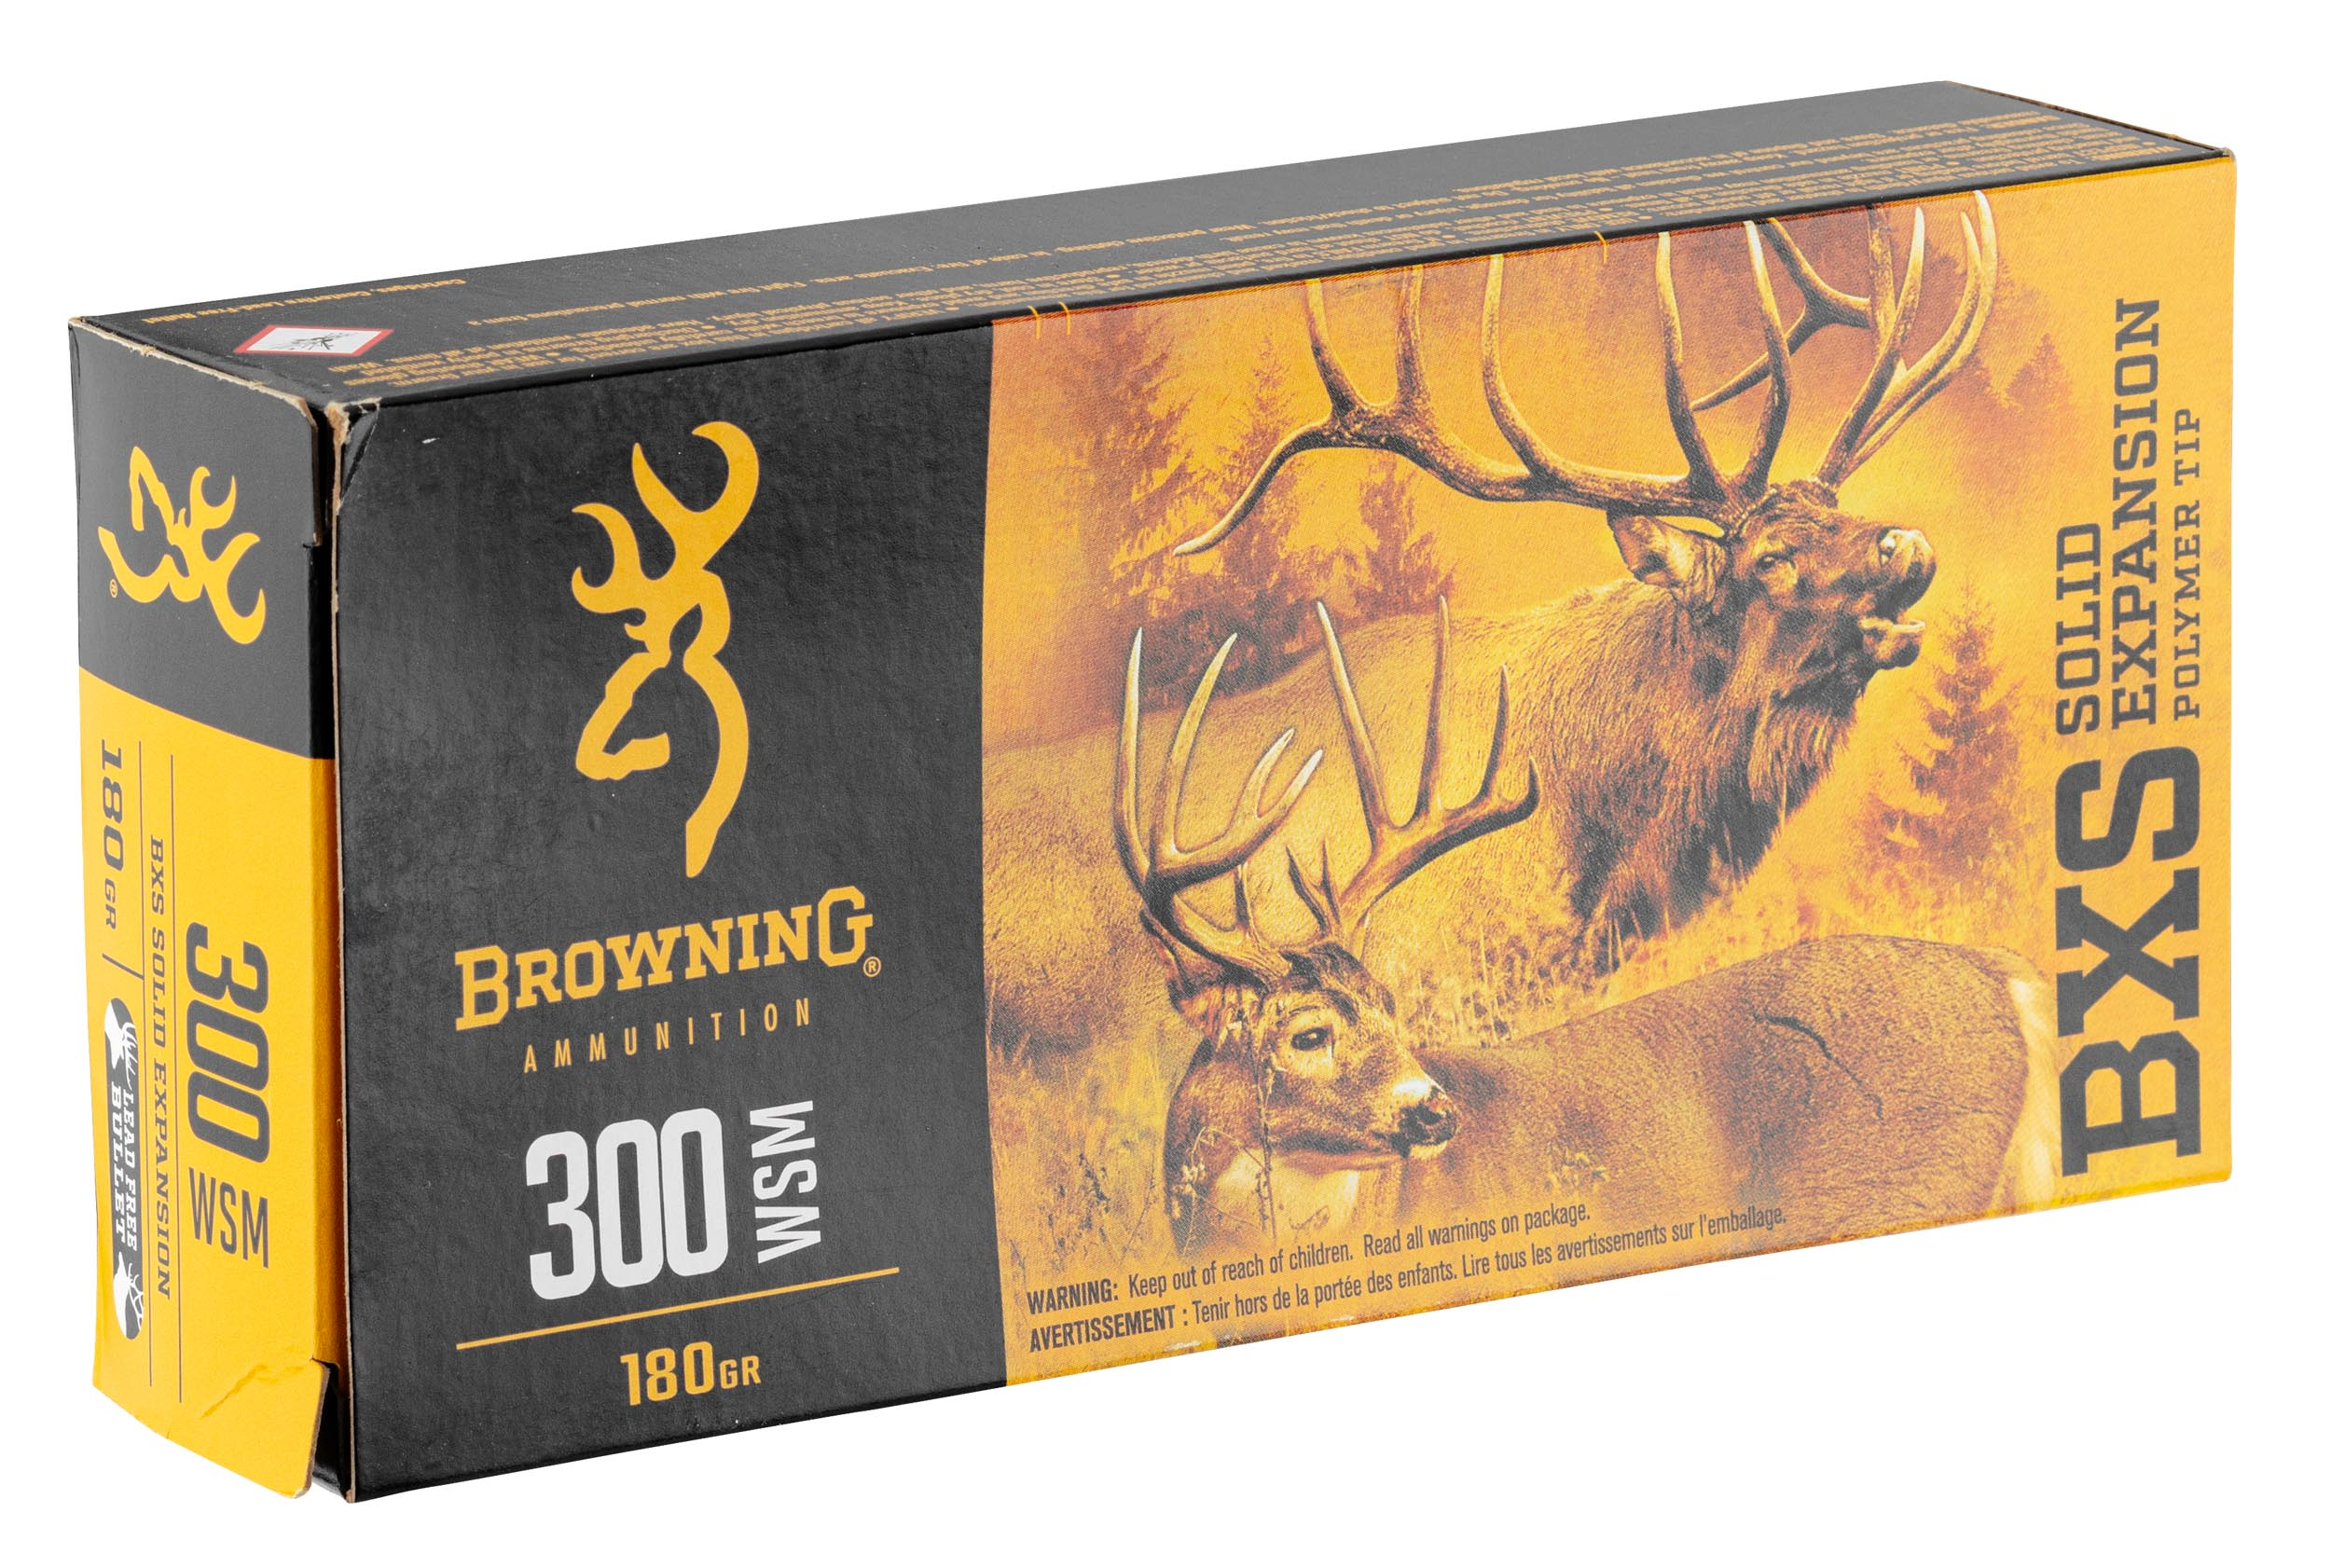 BW1315-1 Munition grande chasse Browning cal. 300 WSM - BW1315